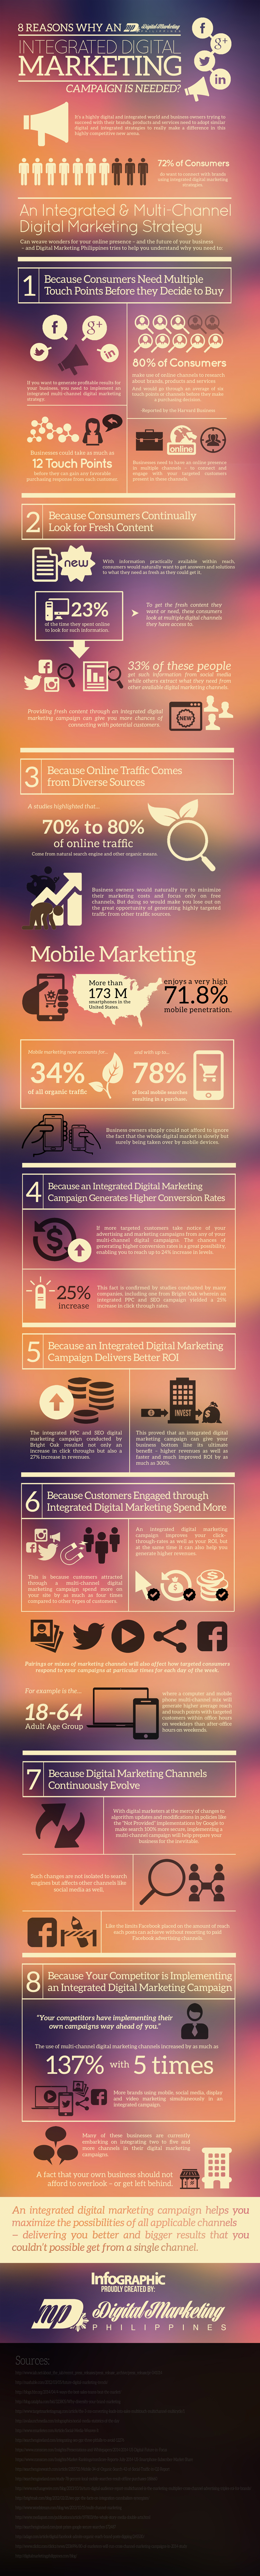 8-Reasons-Why-an-Integrated-Digital-Marketing-Campaign-is-Needed